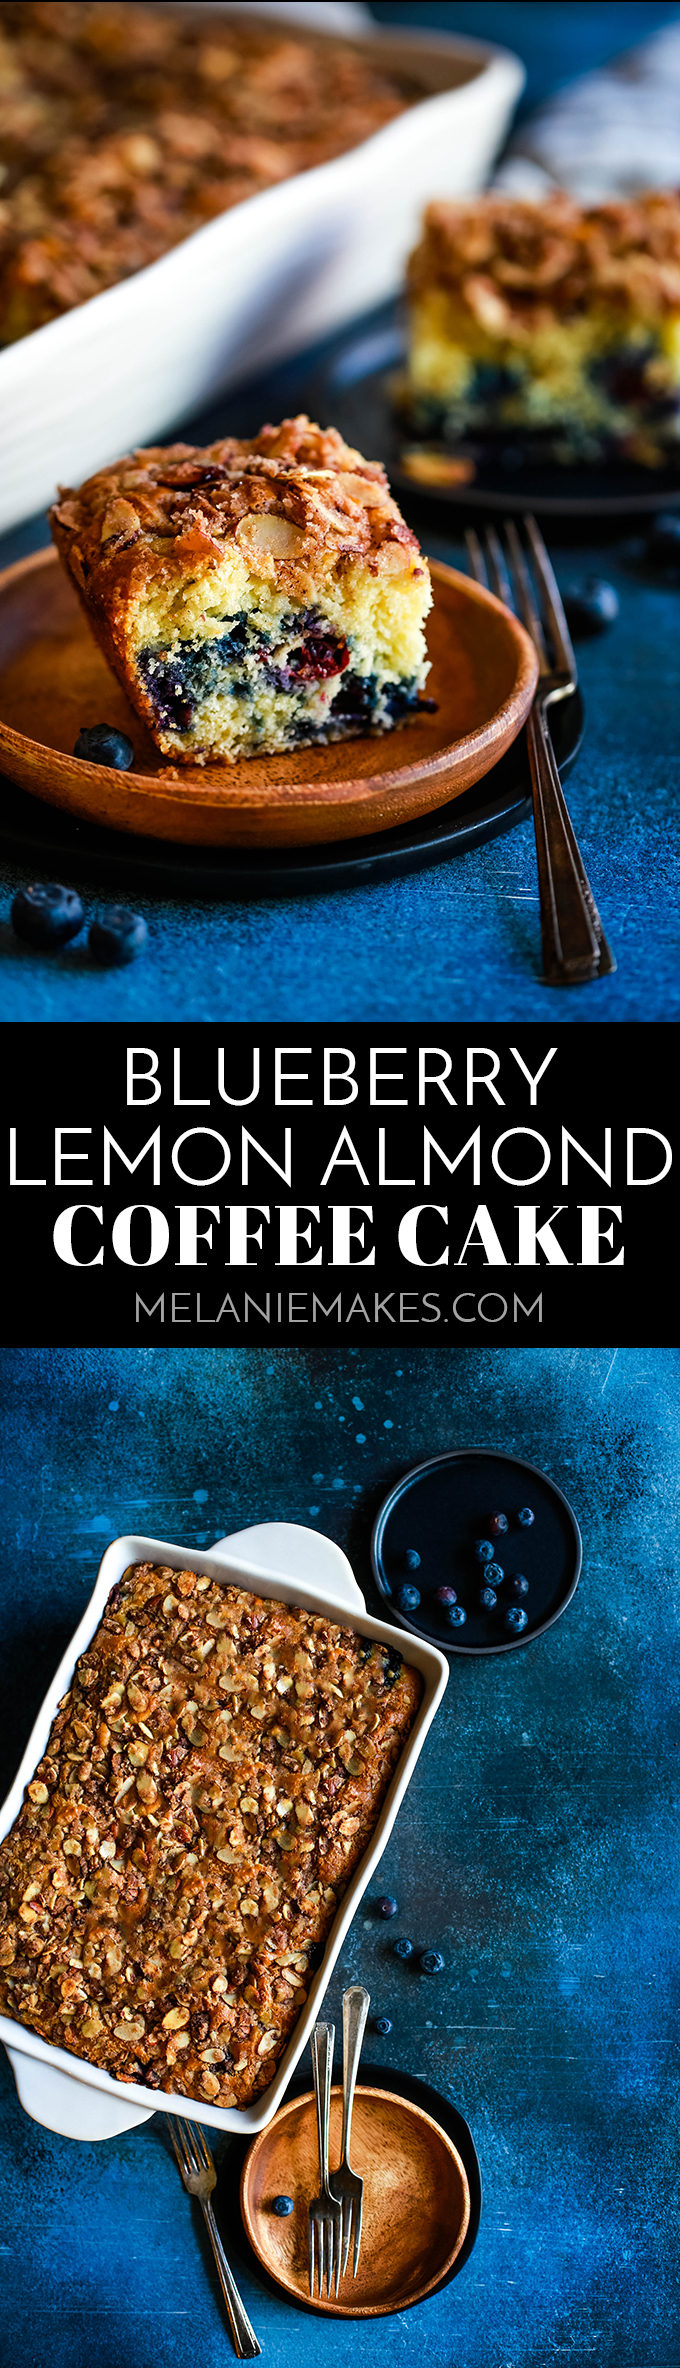 This light and fluffy Blueberry Lemon Almond Coffee Cake is studded with fresh blueberries and topped with an amazing cinnamon sugar almond crumble. #blueberry #lemon #almond #coffeecake #breakfast #brunch #cake